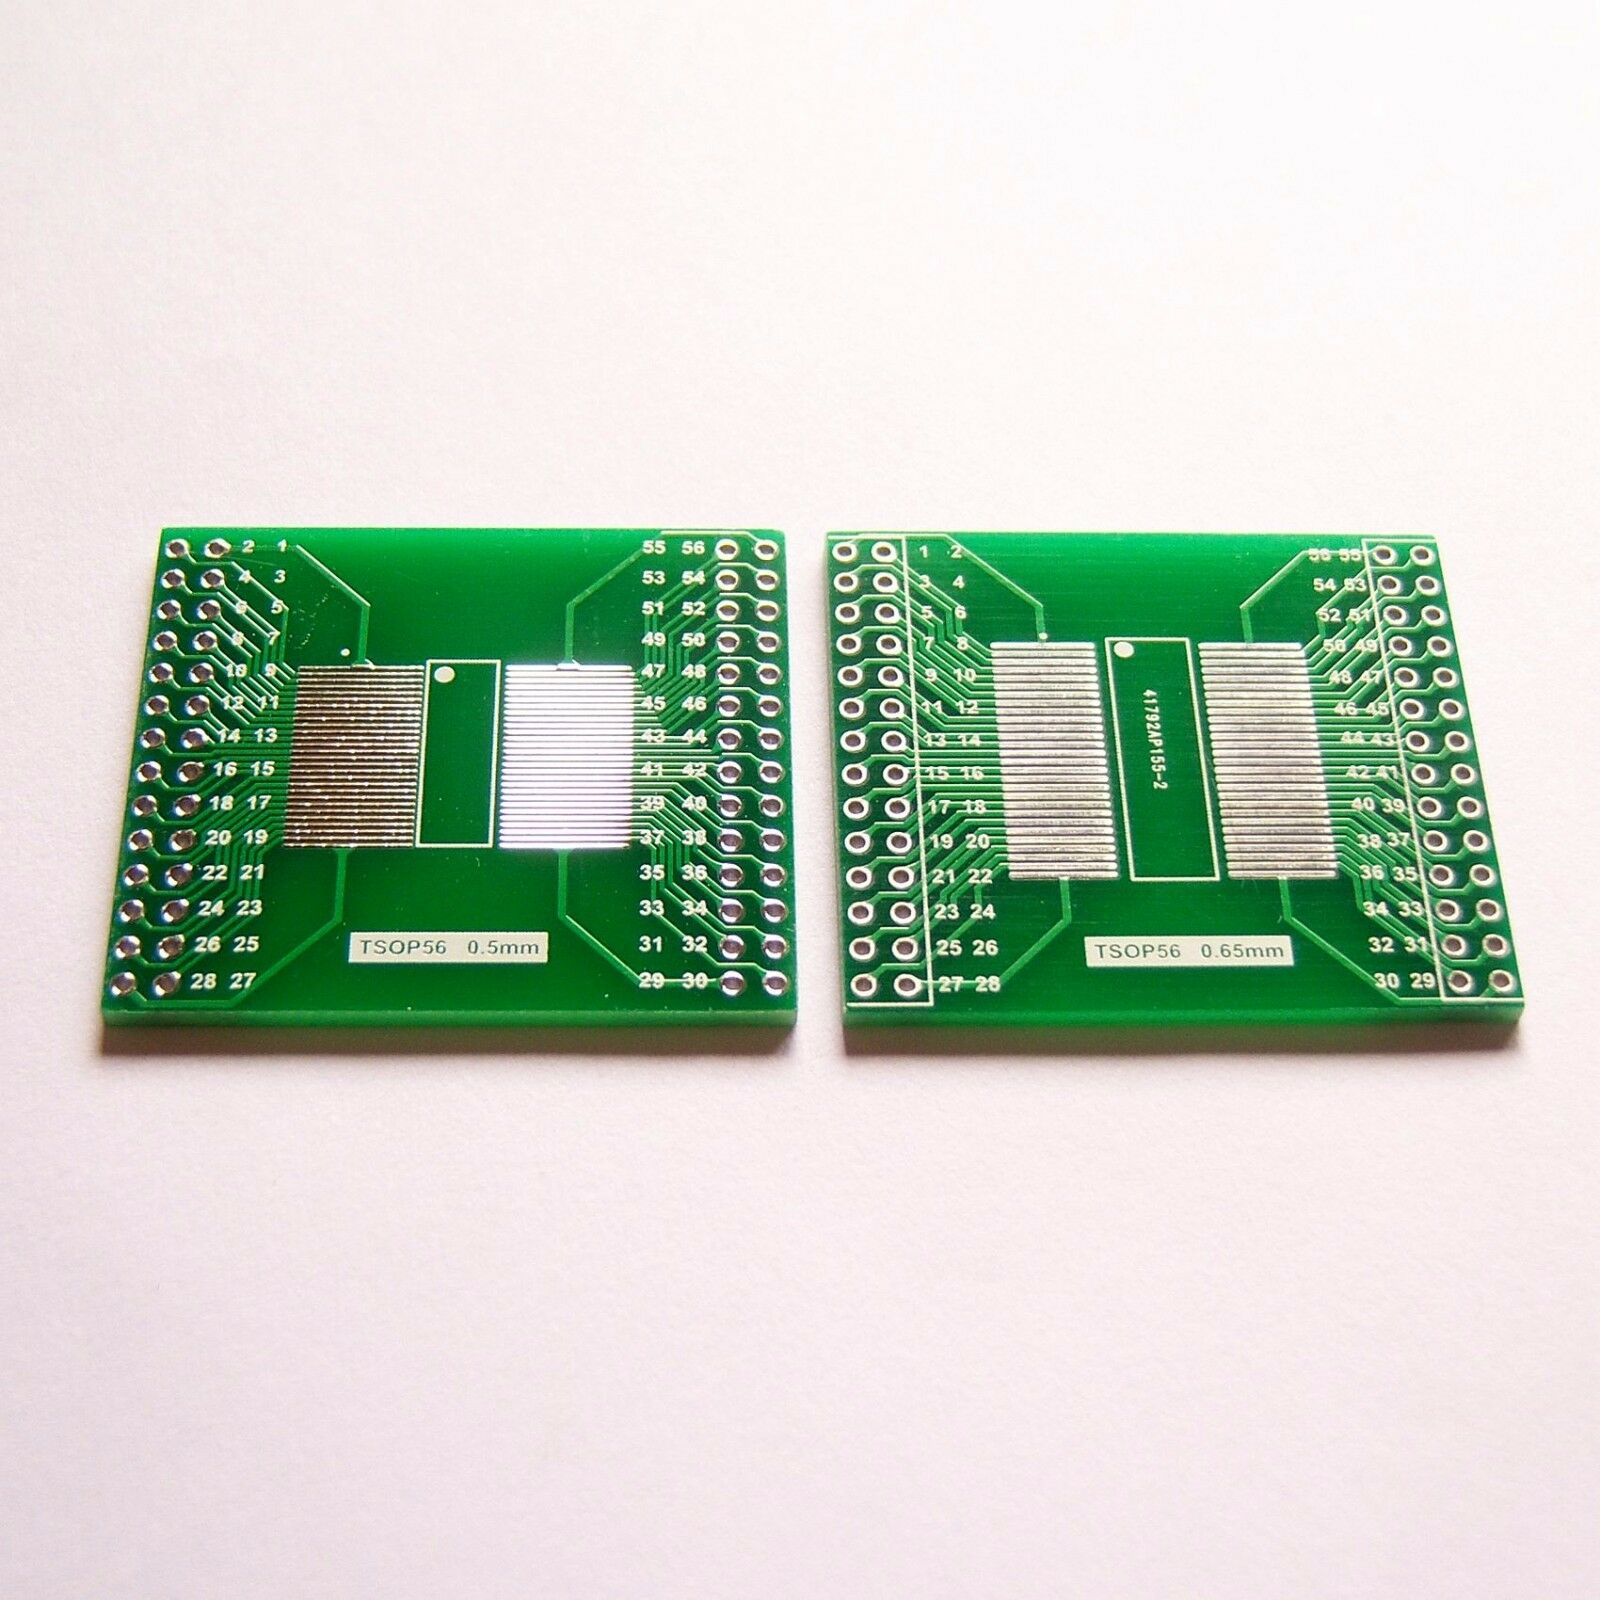 2 Pcs Tsop56 Pin Pitch 065 05mm To Dip 254mm Adapter Pcb Board Circuit Diy Breadboard 830 Point 65pcs Jumper Wire Kit Set Yc 1 Of 5only 4 Available